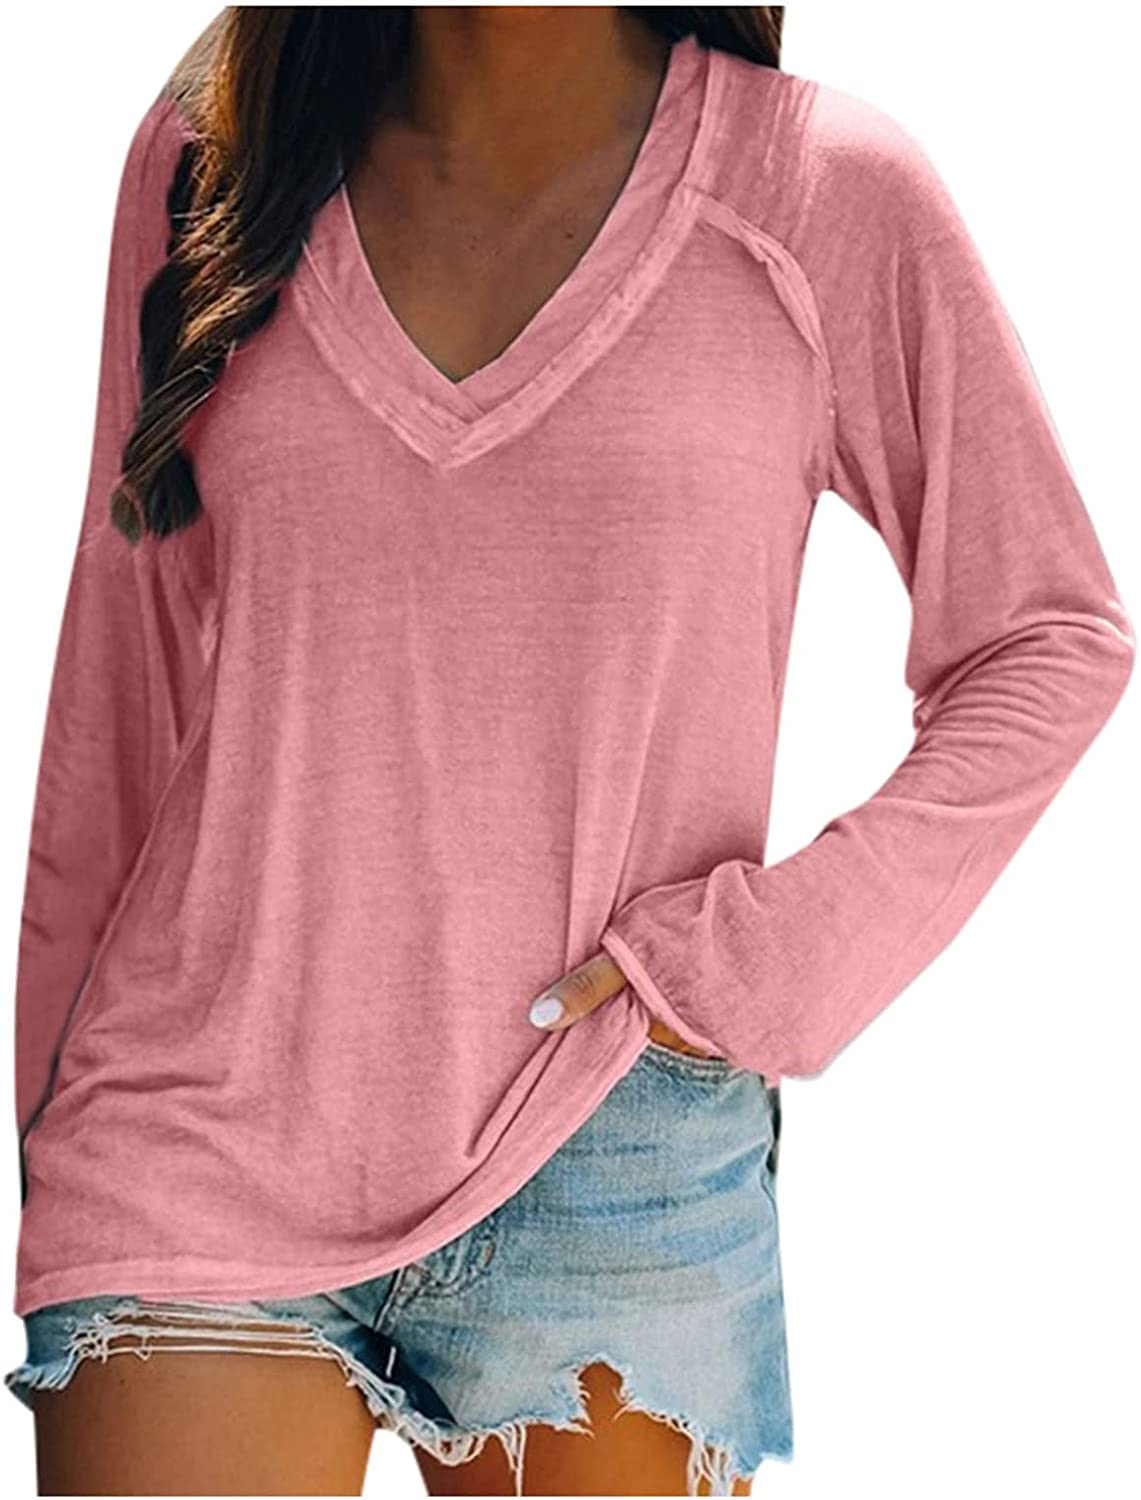 Plus Size Tops for Women Long Sleeve Shirts Casual V Neck Pullover Fashion Sweatshirts Solid Color Blouse